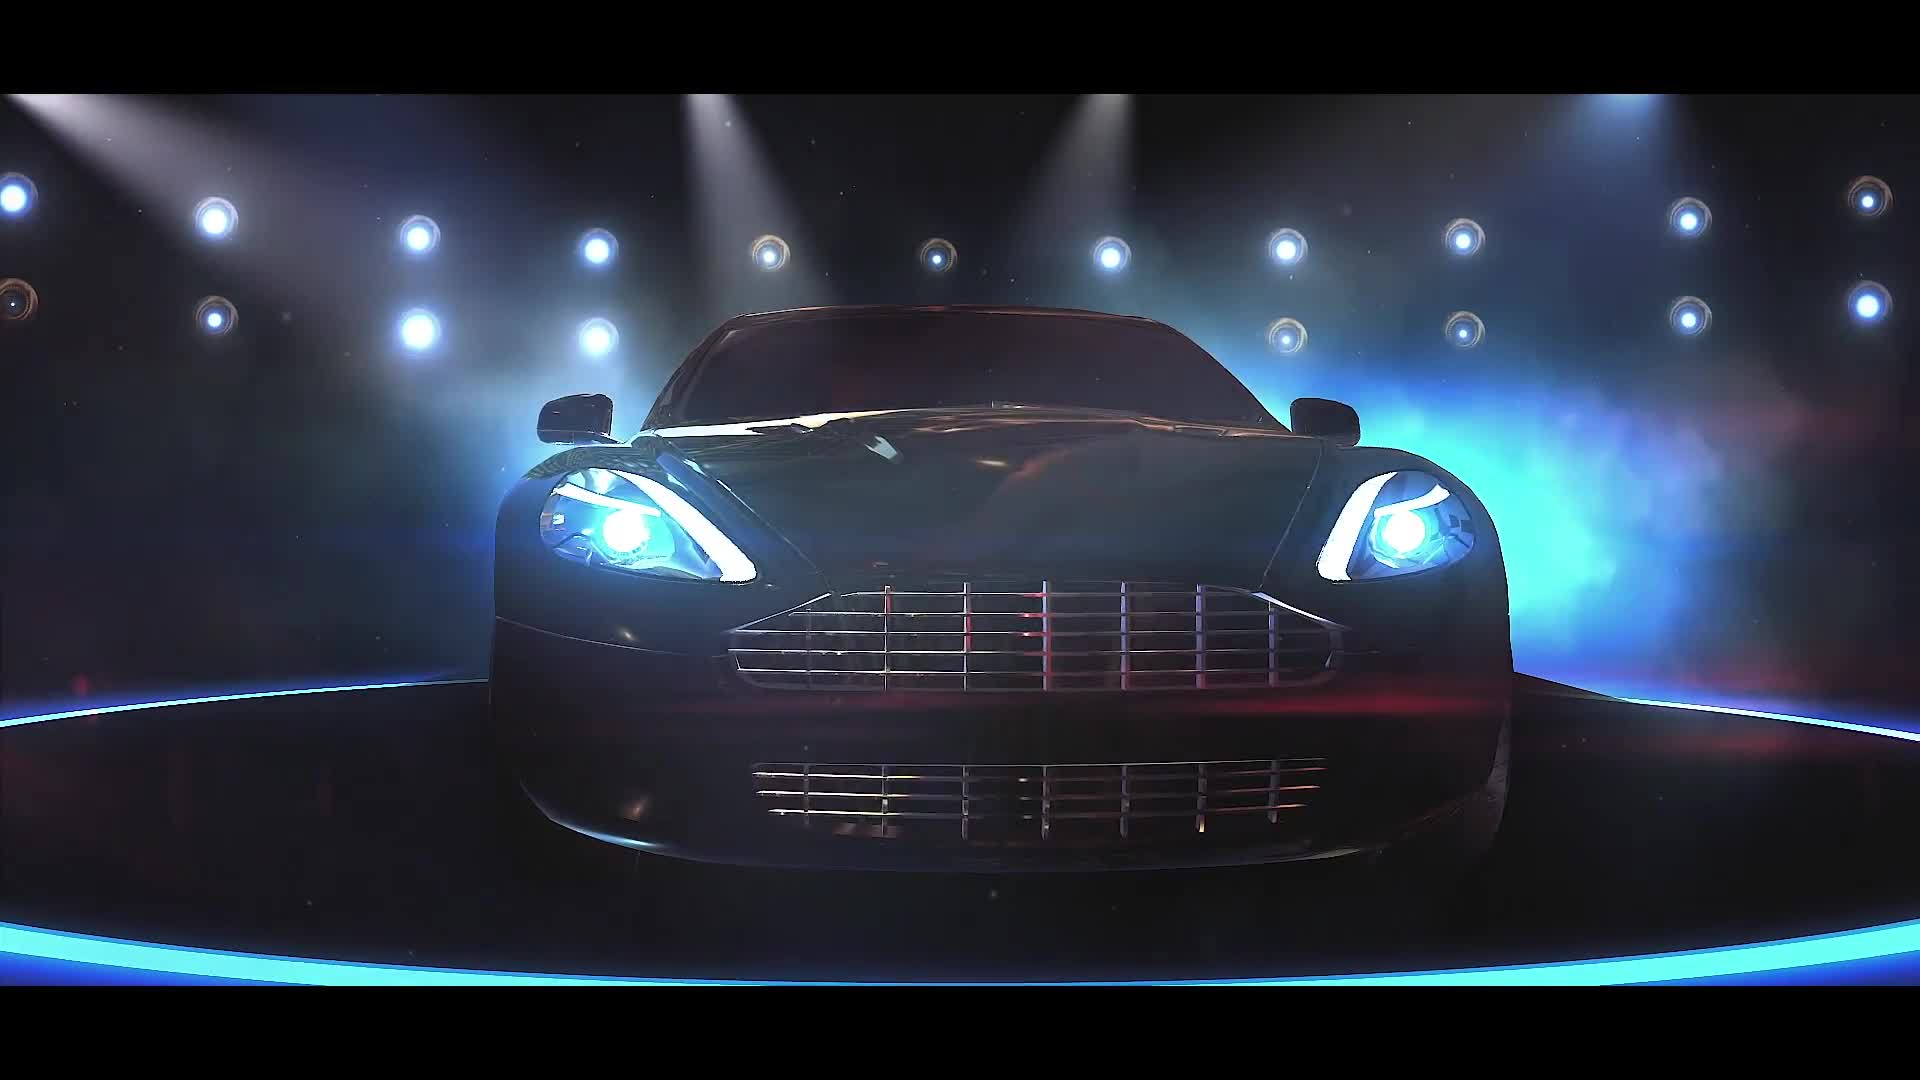 Dynamic Car Intro Videohive 29149720 After Effects Image 1